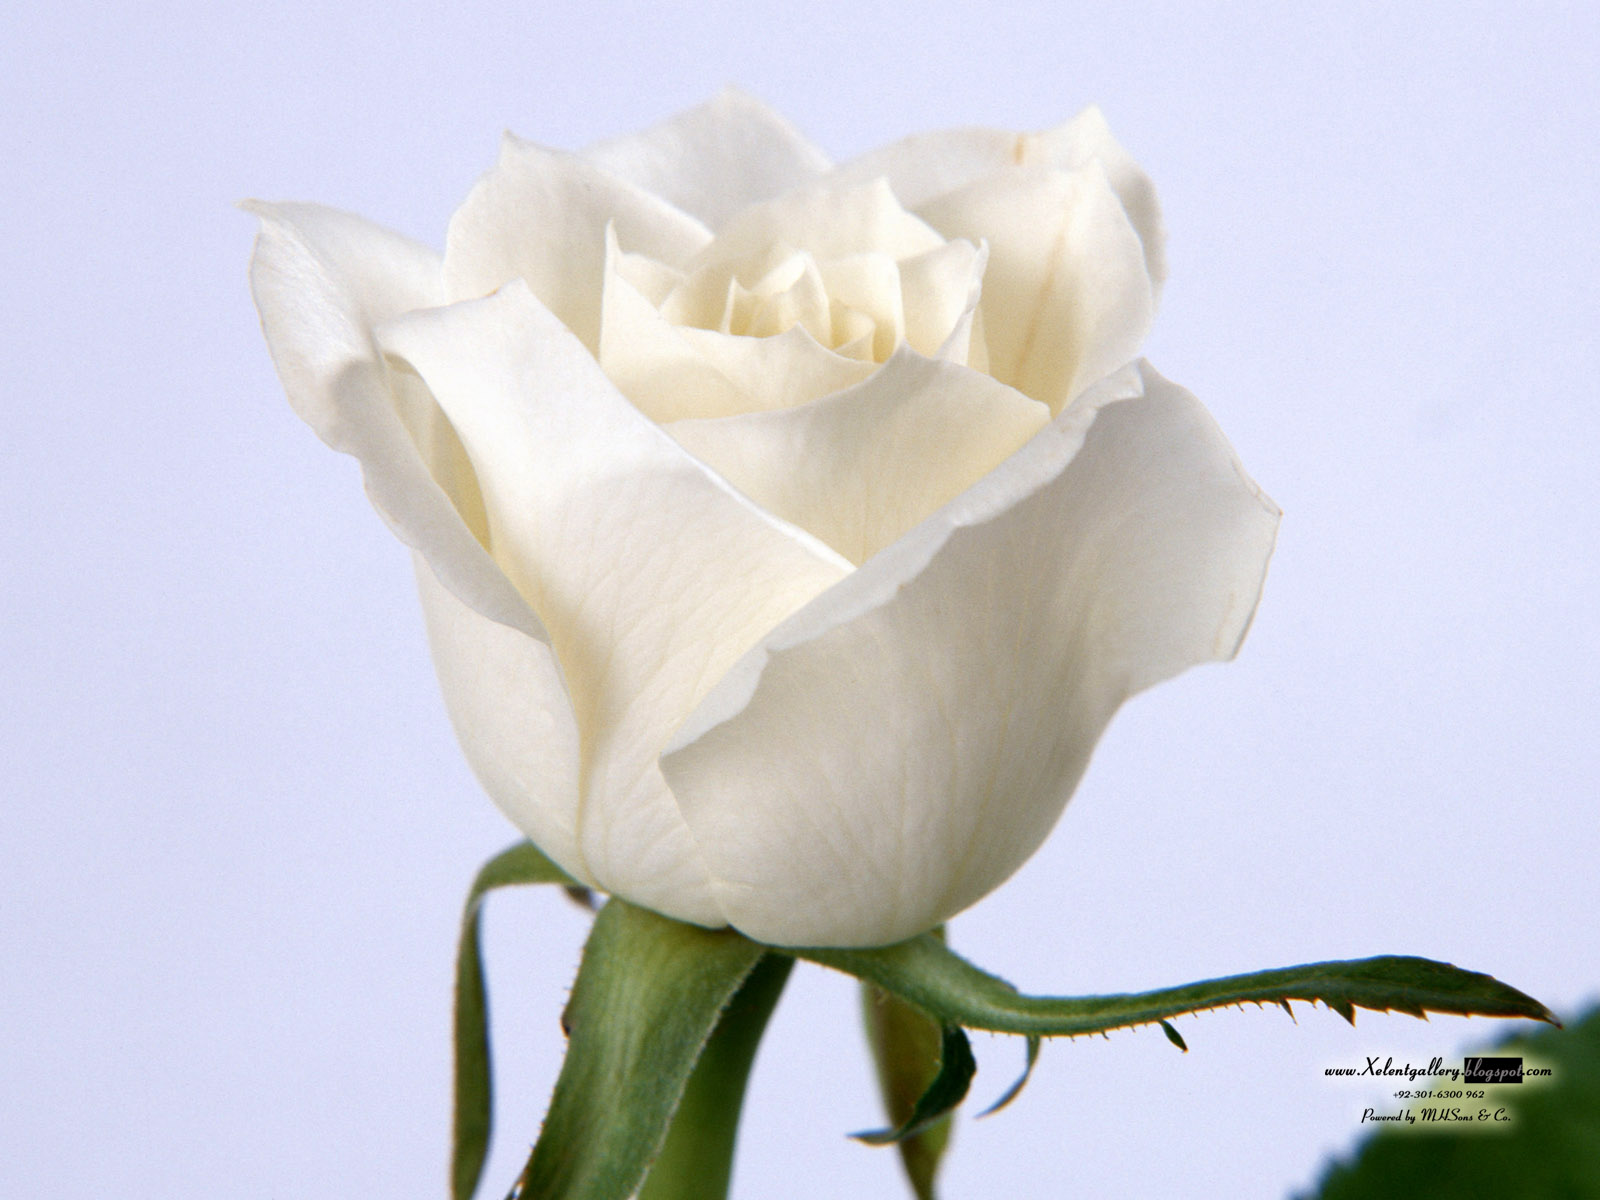 http://1.bp.blogspot.com/-RthafMtp6vY/T_hYAvCLnCI/AAAAAAAAC0o/ncSjDYax2bg/s1600/The-best-top-desktop-roses-wallpapers-hd-rose-wallpaper-white-rose+%252832%2529.jpg